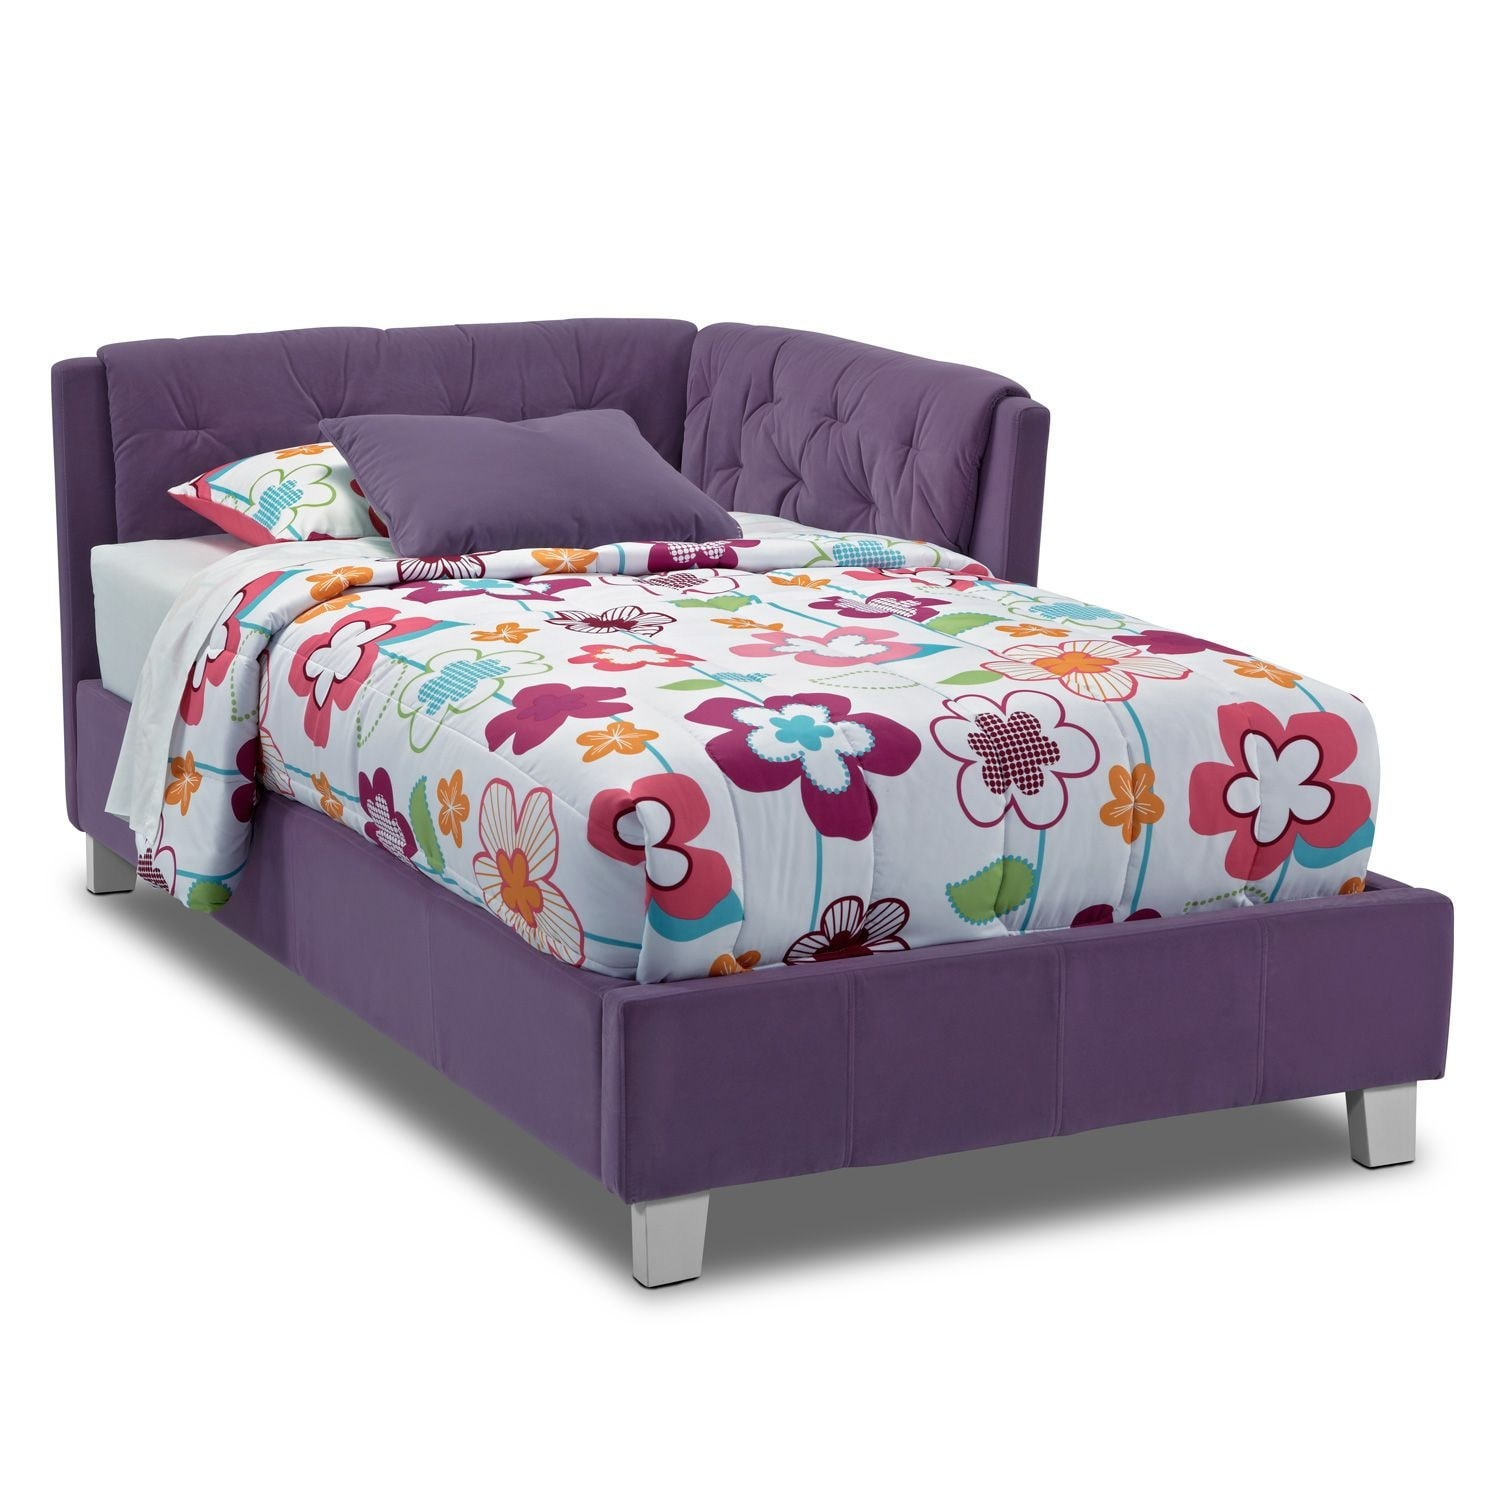 Kids Furniture - Jordan Twin Corner Bed - Purple